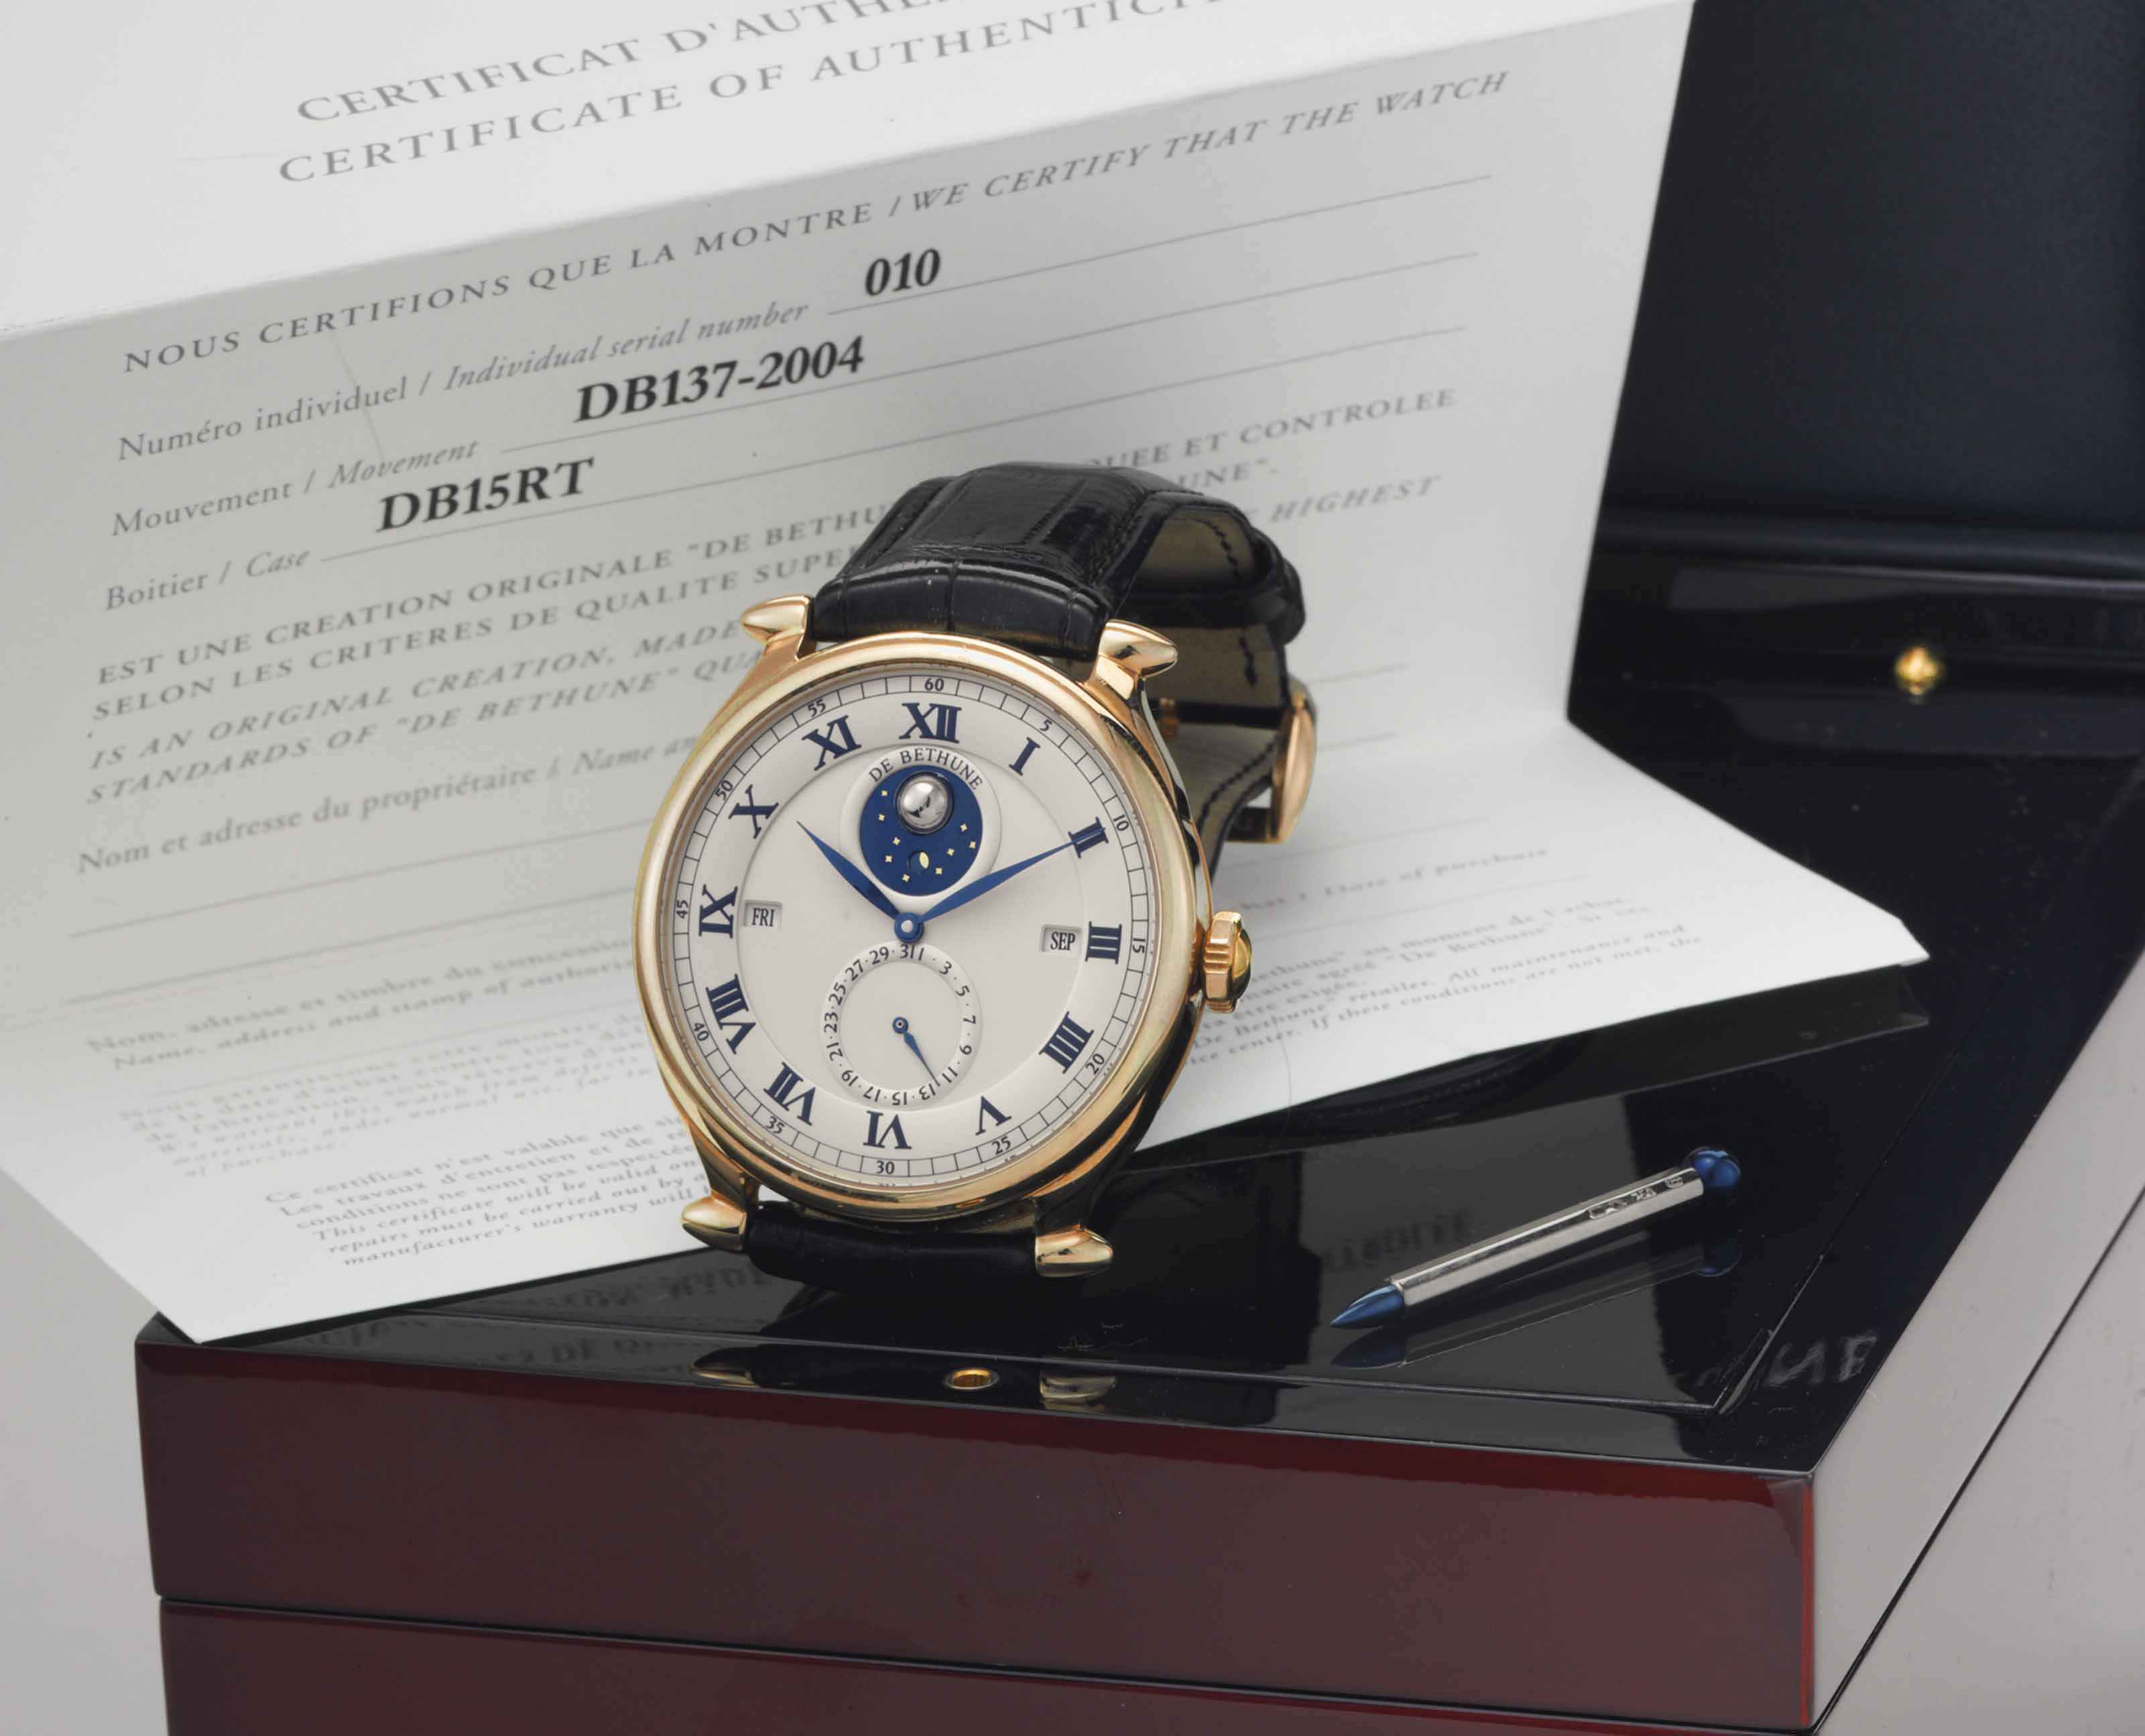 De Bethune. A Fine and Large 18k Gold Perpetual Calendar Wristwatch with Three-dimensional Revolving Moon Phases